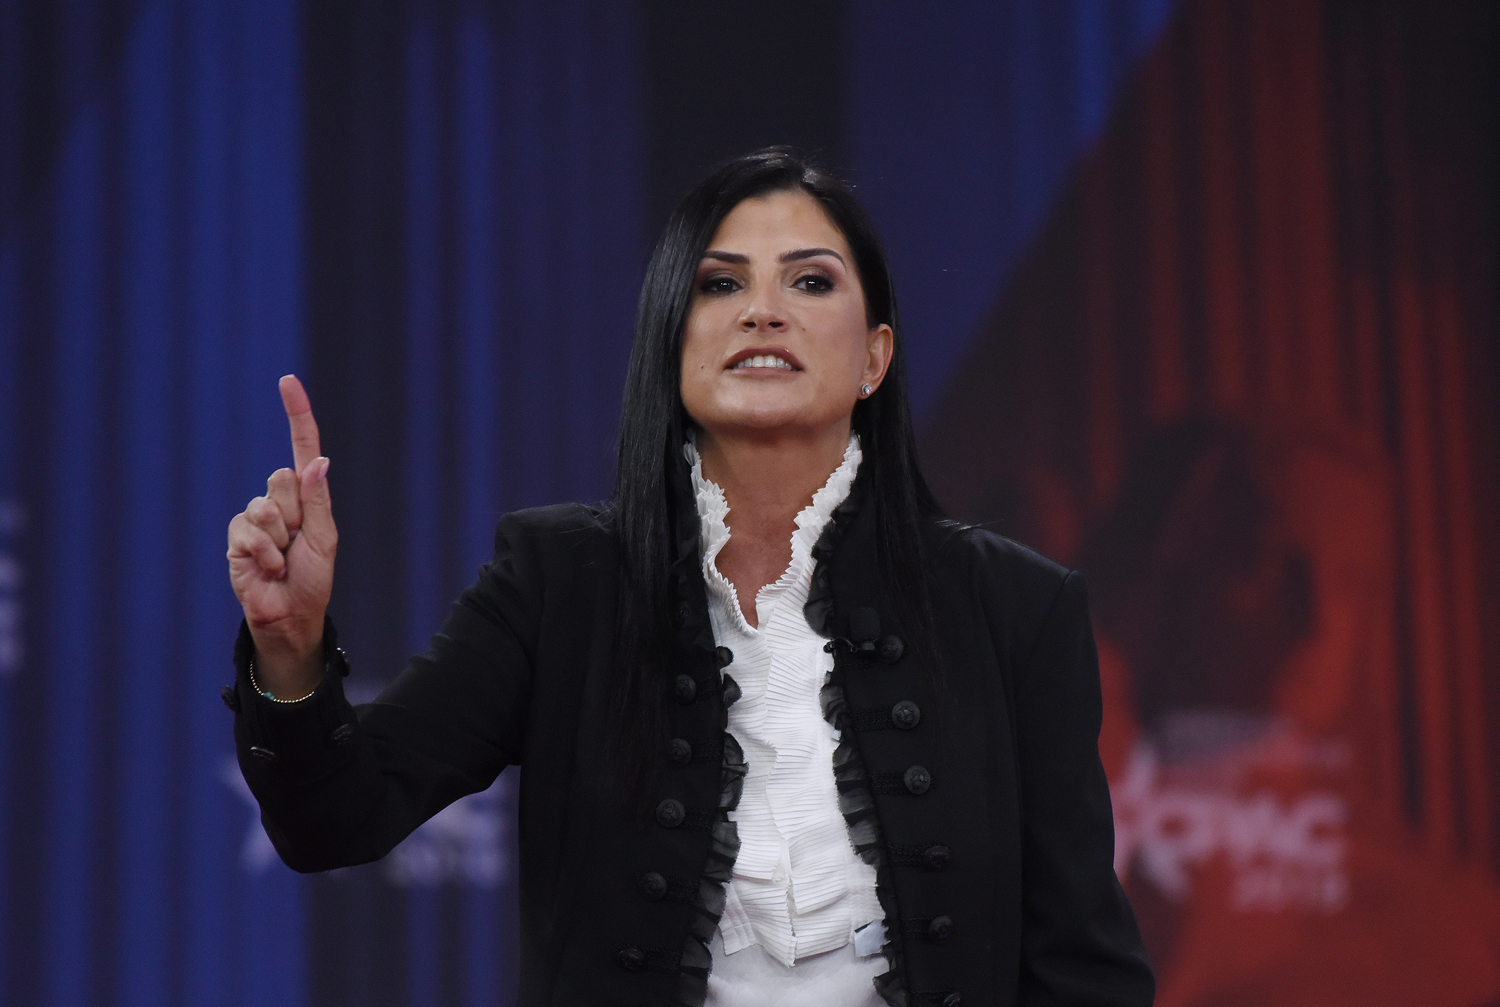 NRA spokeswoman Dana Loesch speaks during the Conservative Political Action Conference in National Harbor, Maryland, on Feb. 22.